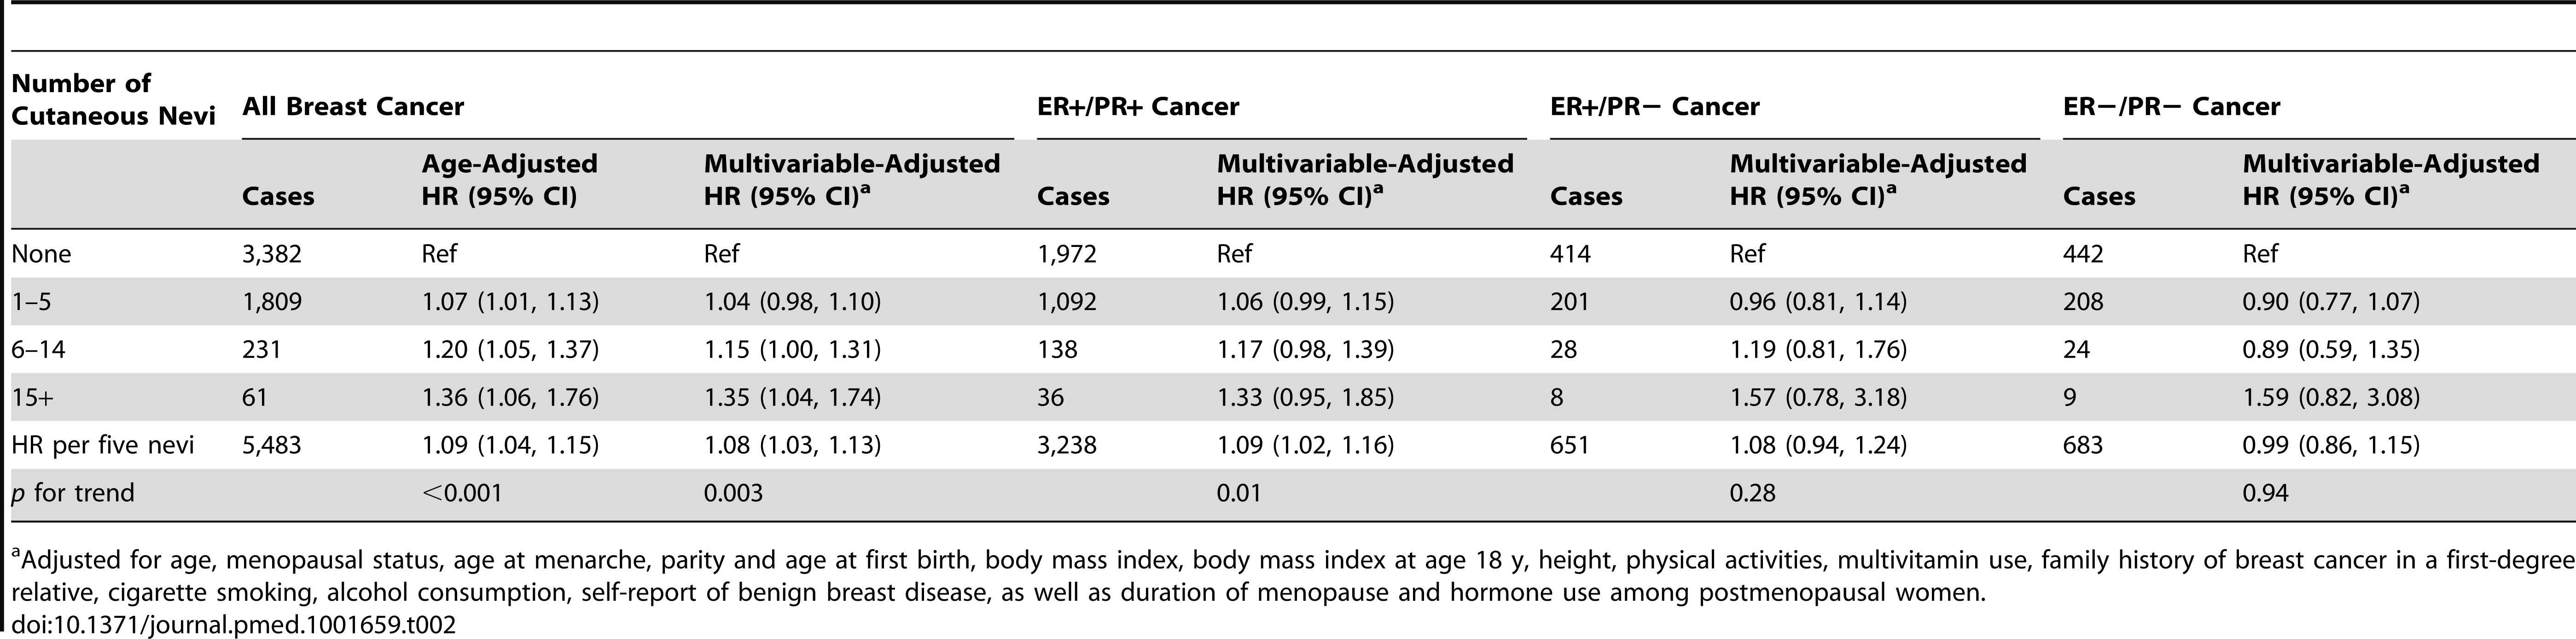 The number of cutaneous nevi and breast cancer risk by estrogen and progesterone receptor status.